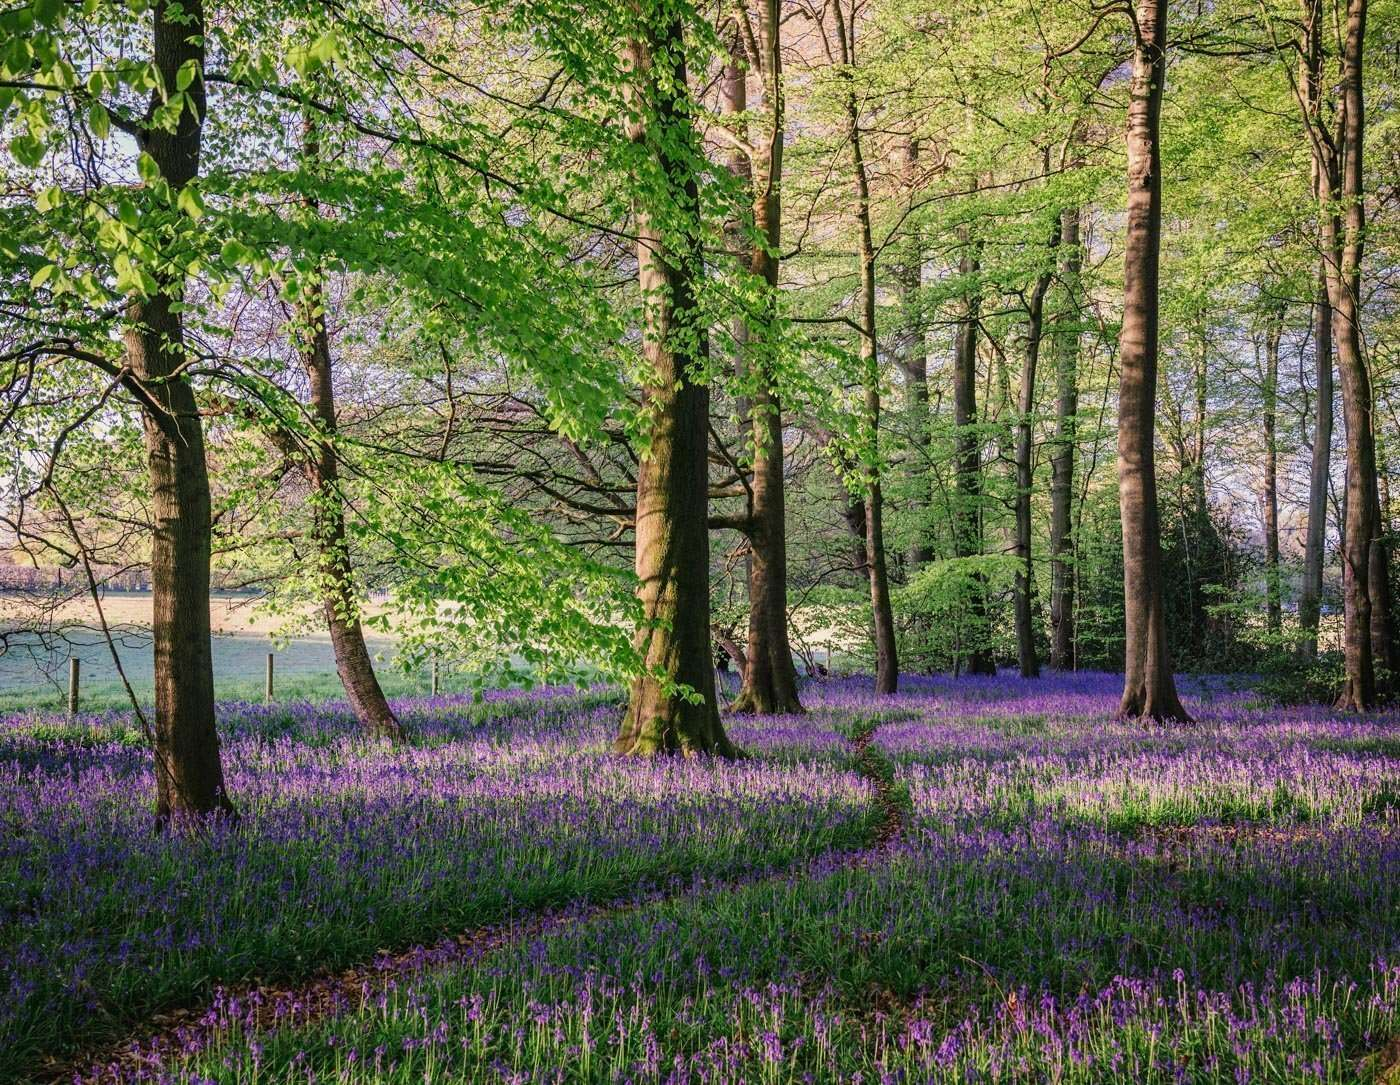 Photo of bluebells with Path running through